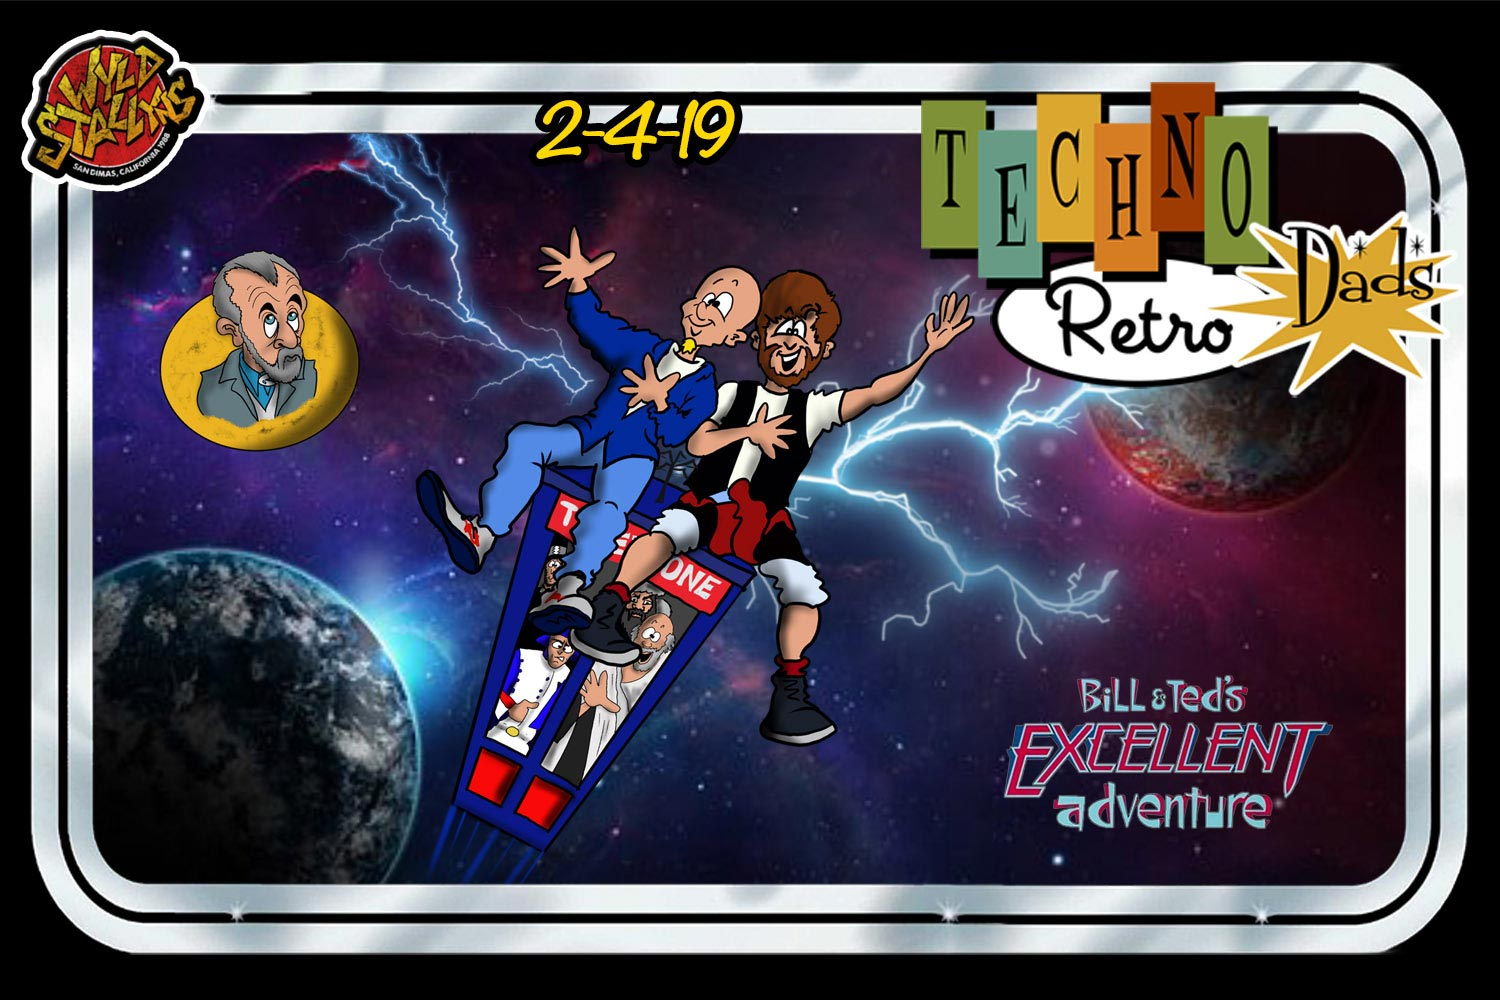 Bill and Ted TechnoRetro Dads